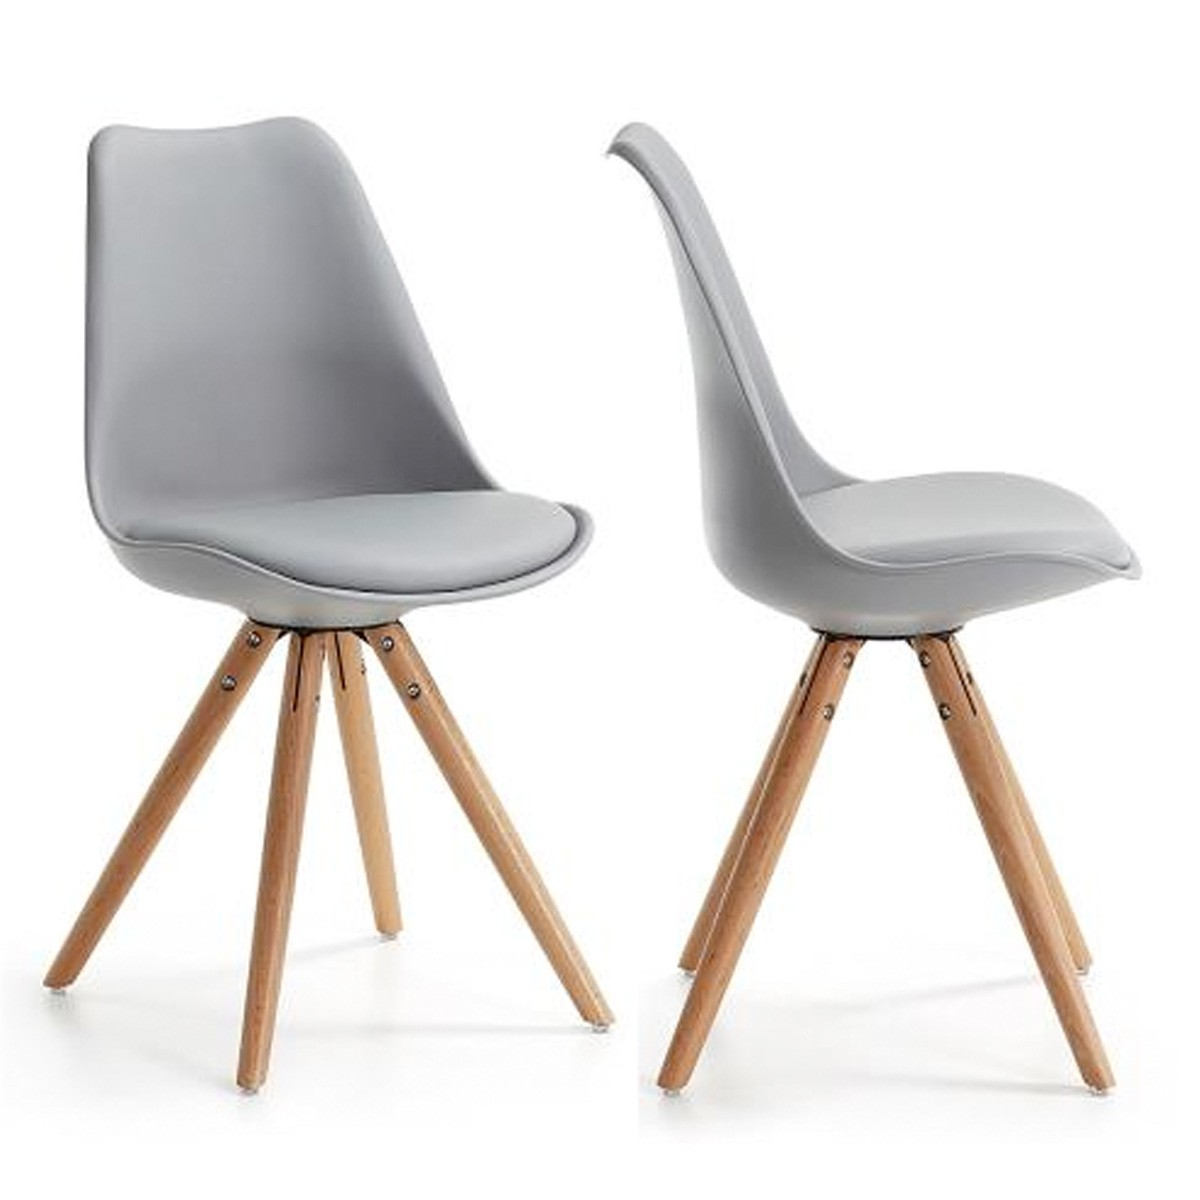 chaises design une belle s lection d co tendance On les chaises design